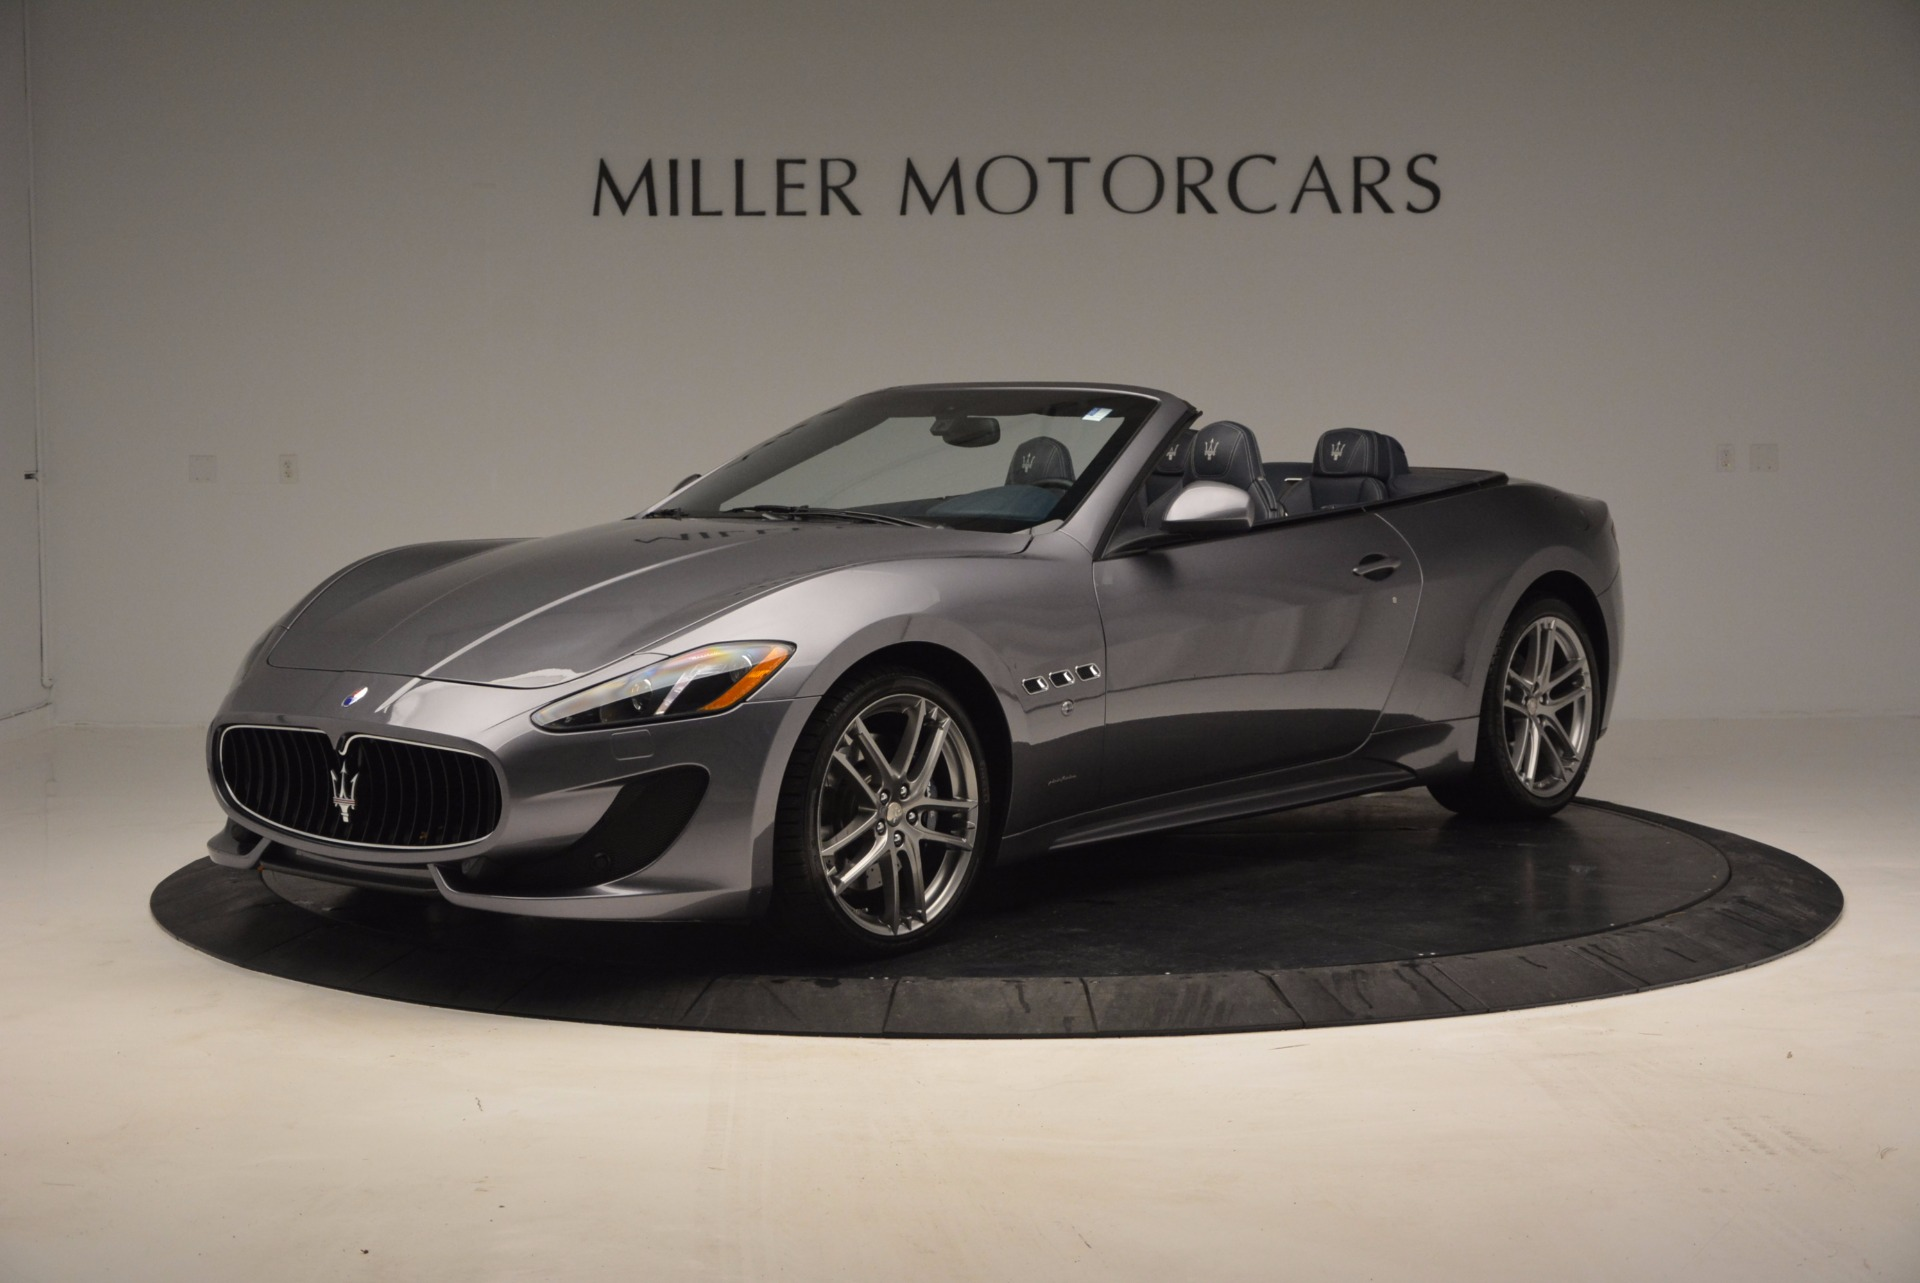 New 2017 Maserati GranTurismo Sport for sale Sold at Bugatti of Greenwich in Greenwich CT 06830 1